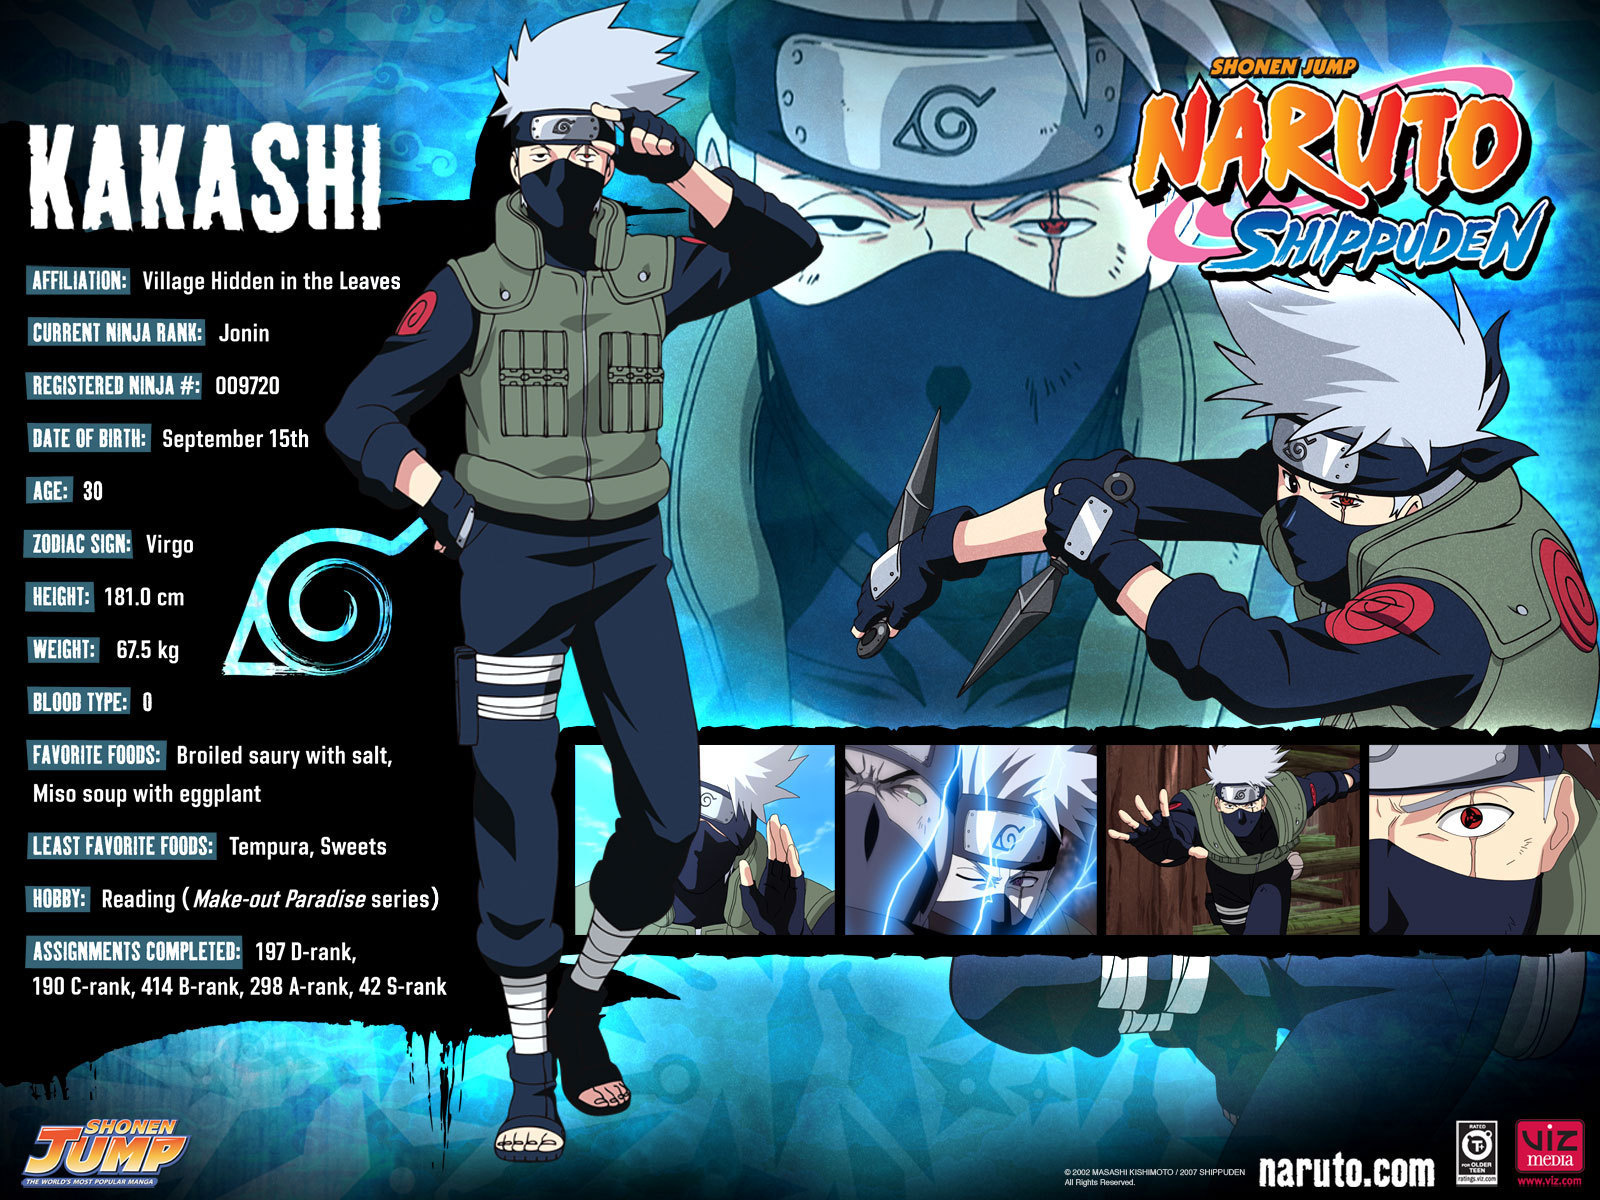 Naruto Shippuden Wallpaper gt; Naruto Wallpaper is a hi res Wallpaper